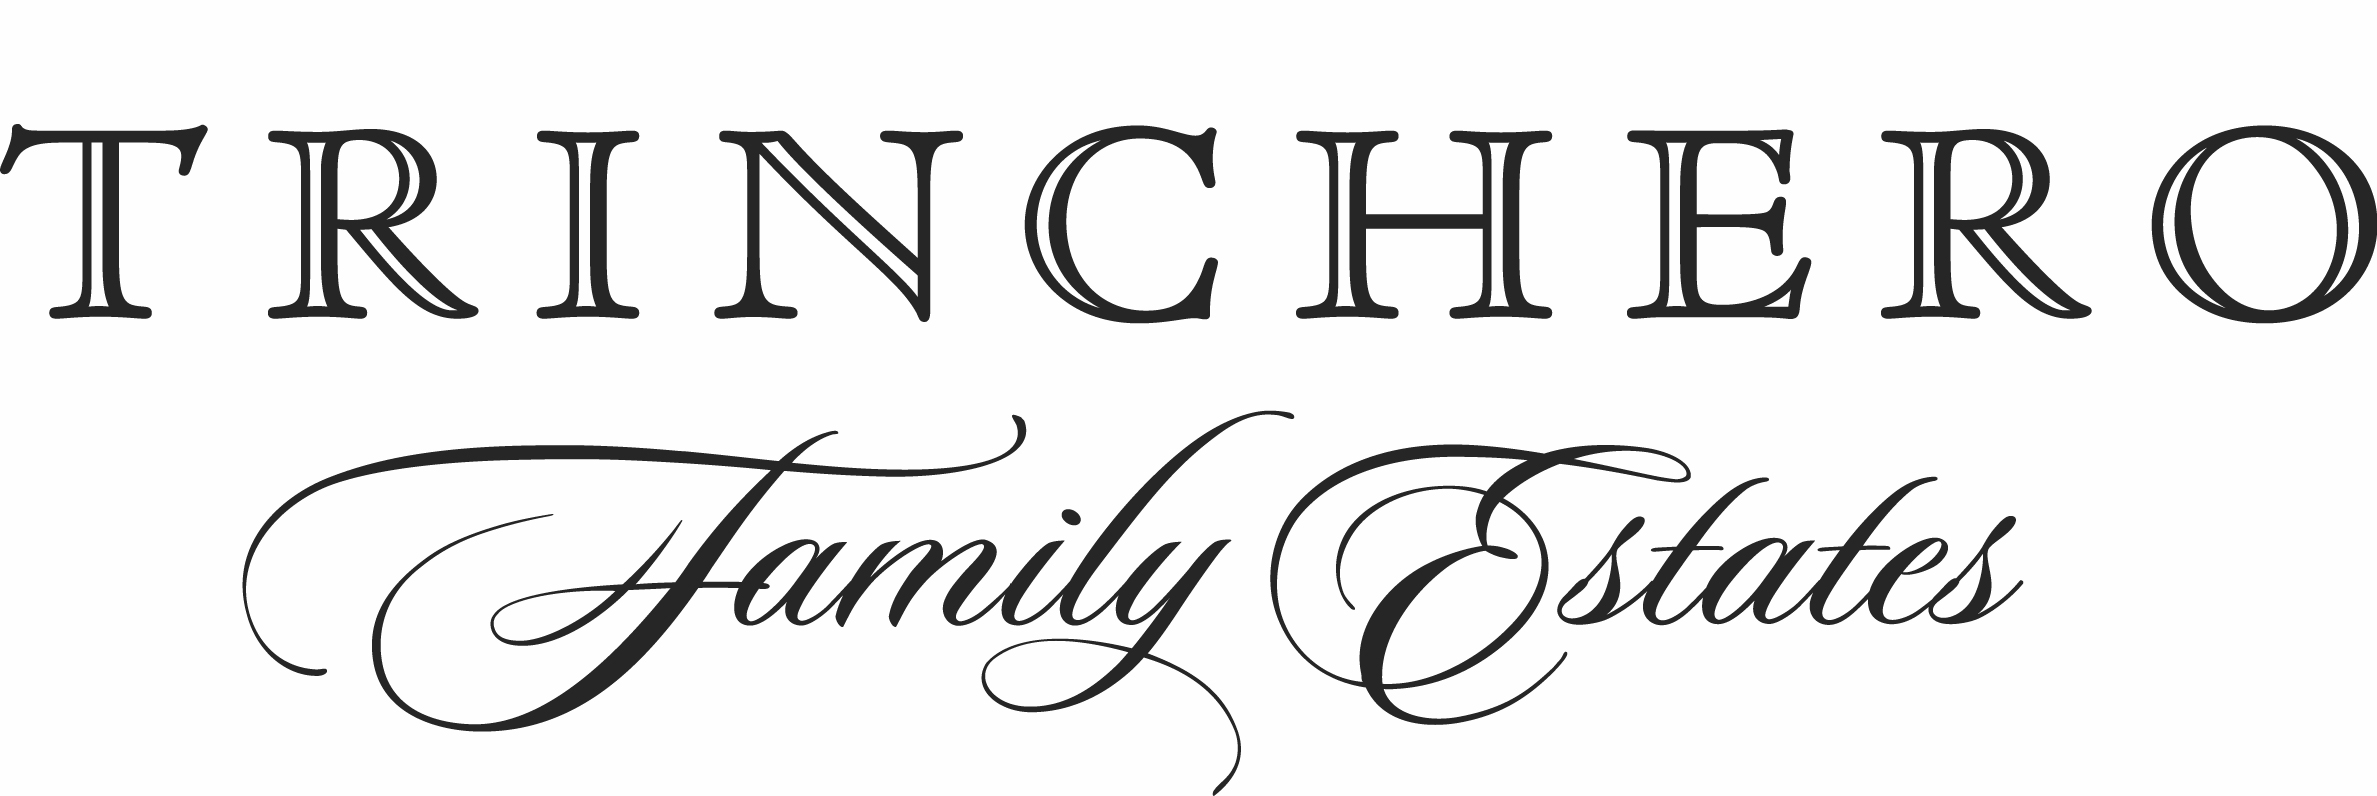 Trinchero-Family-Estates-High-Res-Logo